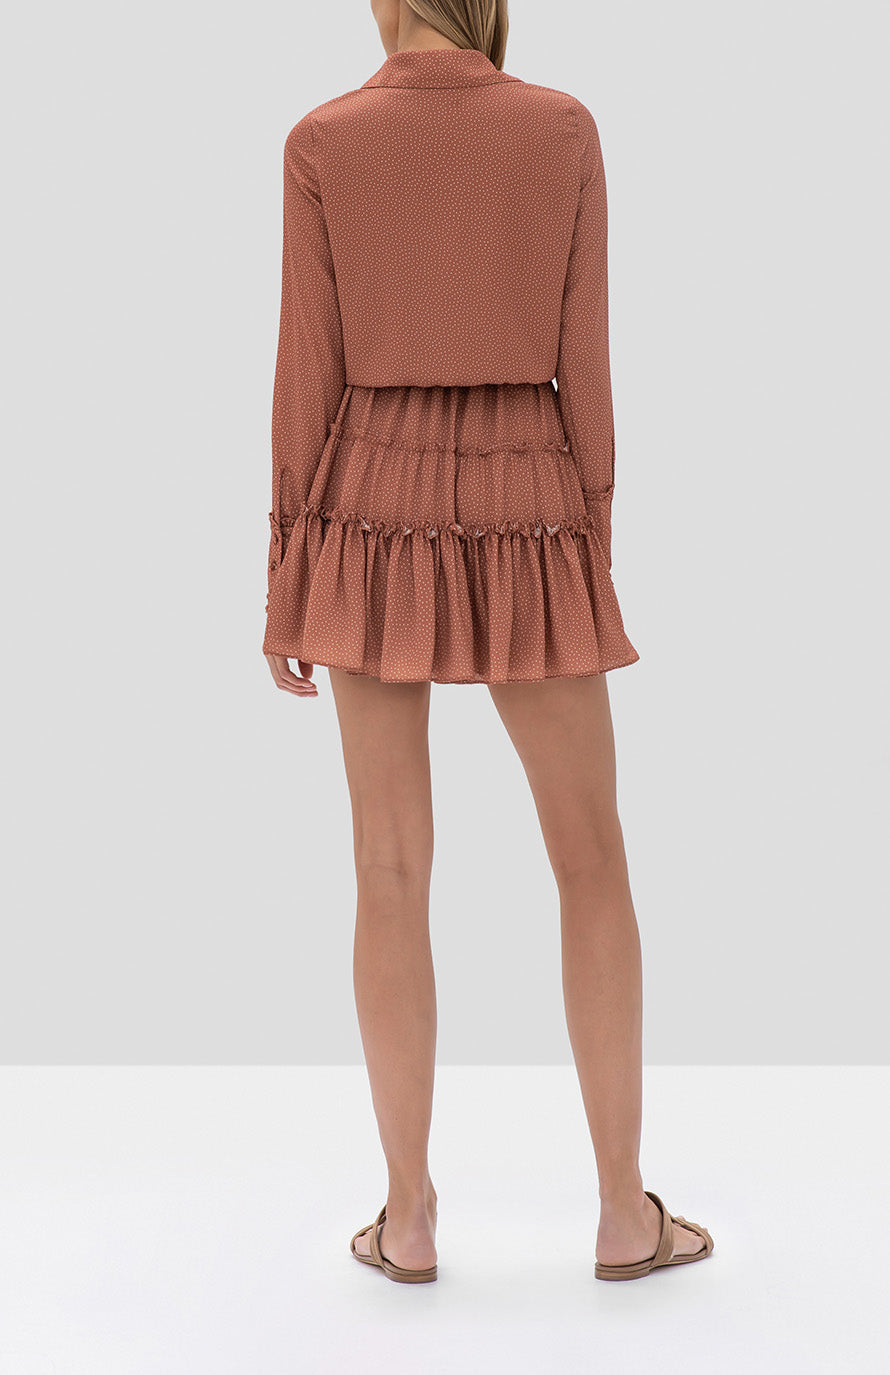 Alexis Rozalyn Dress in Tan Dot from the Fall Winter 2019 Ready To Wear Collection - Rear View